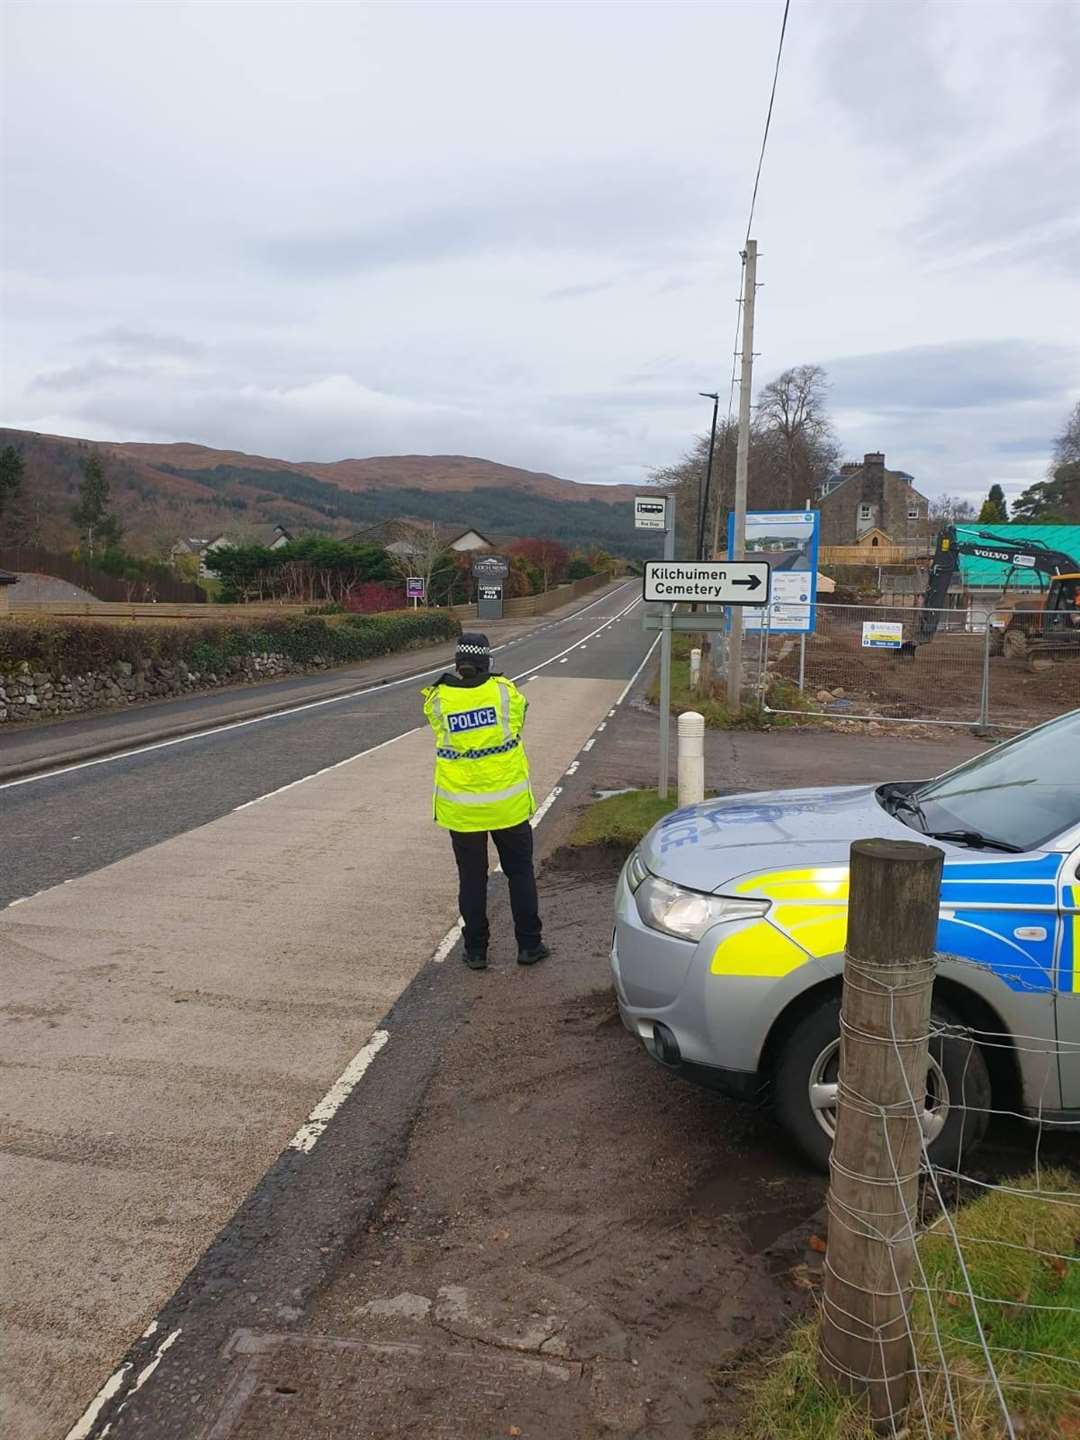 A police officer monitors vehicle speeds in Fort Augustus.